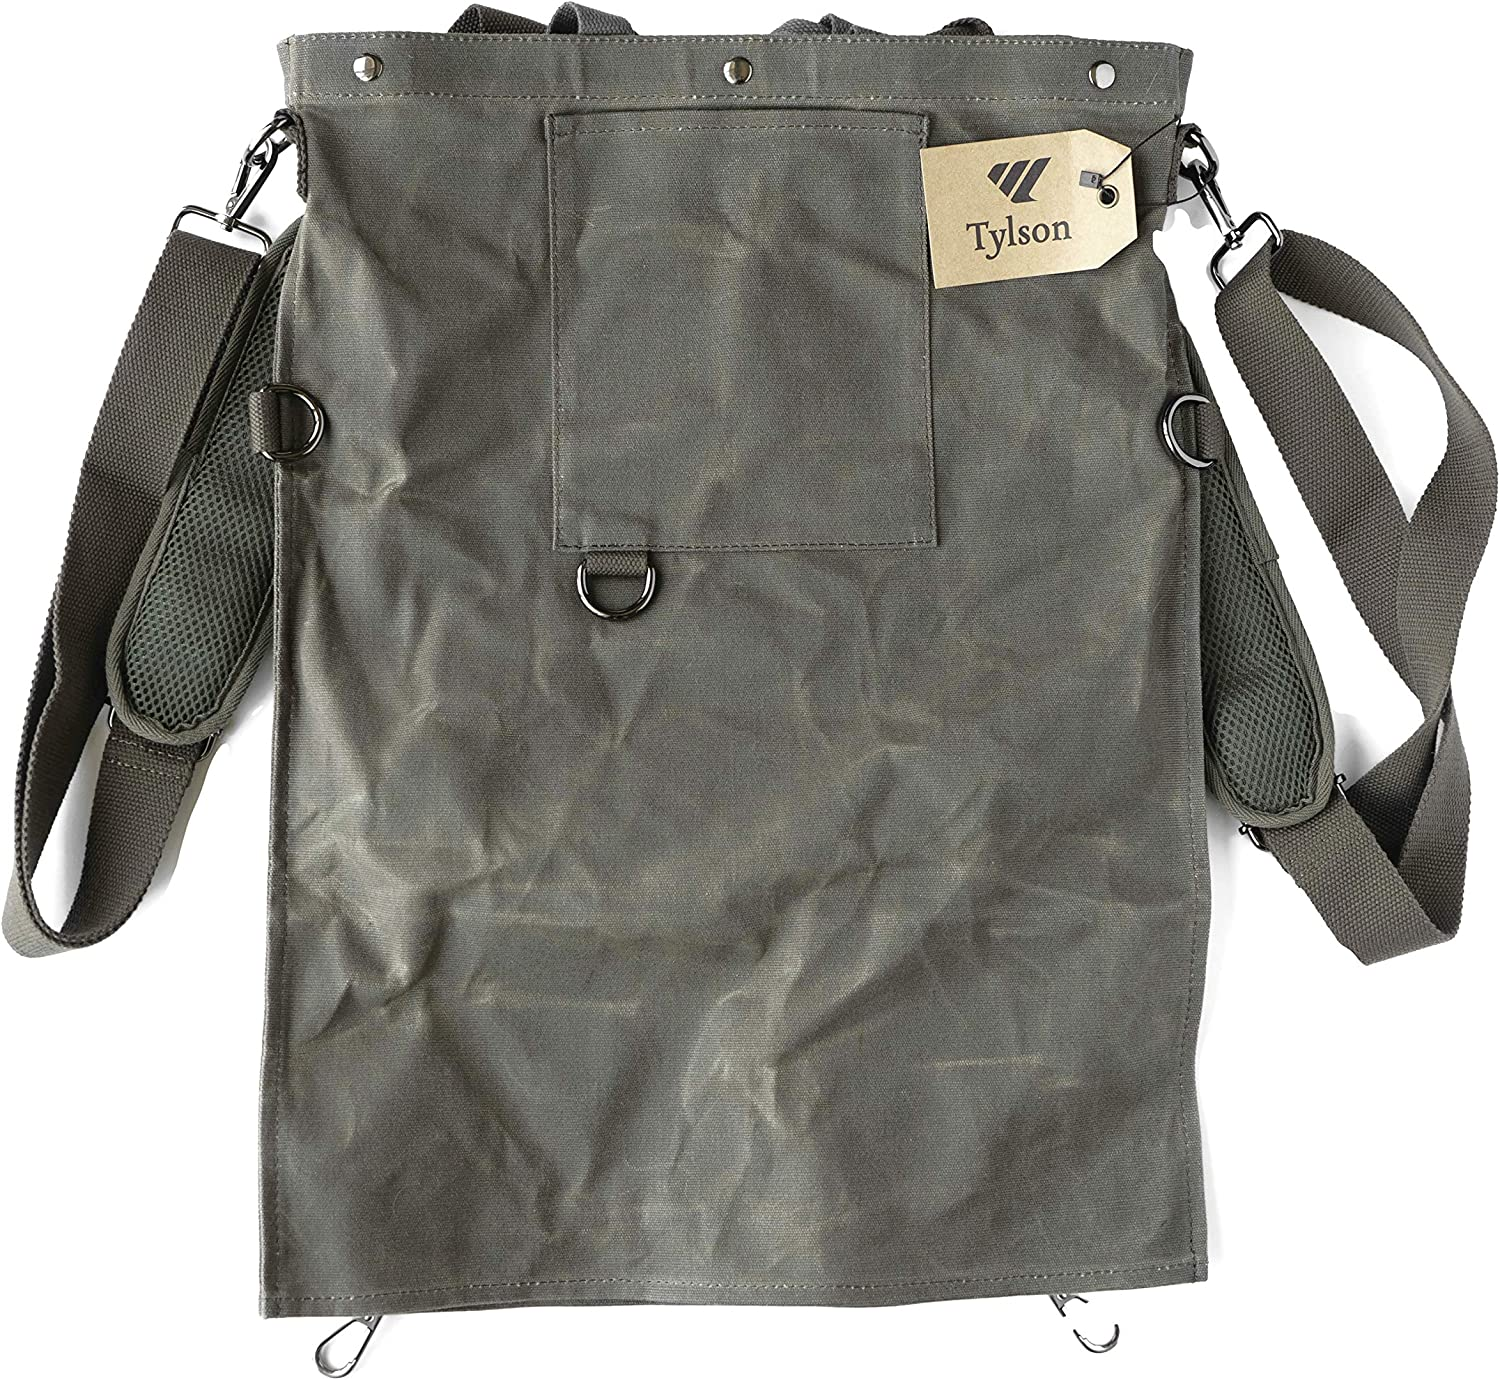 TYLSON - Harvest, Foraging & Fruit Picker Bag - Stylish & Built to Last - The Easy Alternative to a Fruit Tree Picking Apron or Gathering Basket - Perfect for Bushcraft & Garden Enthusiasts